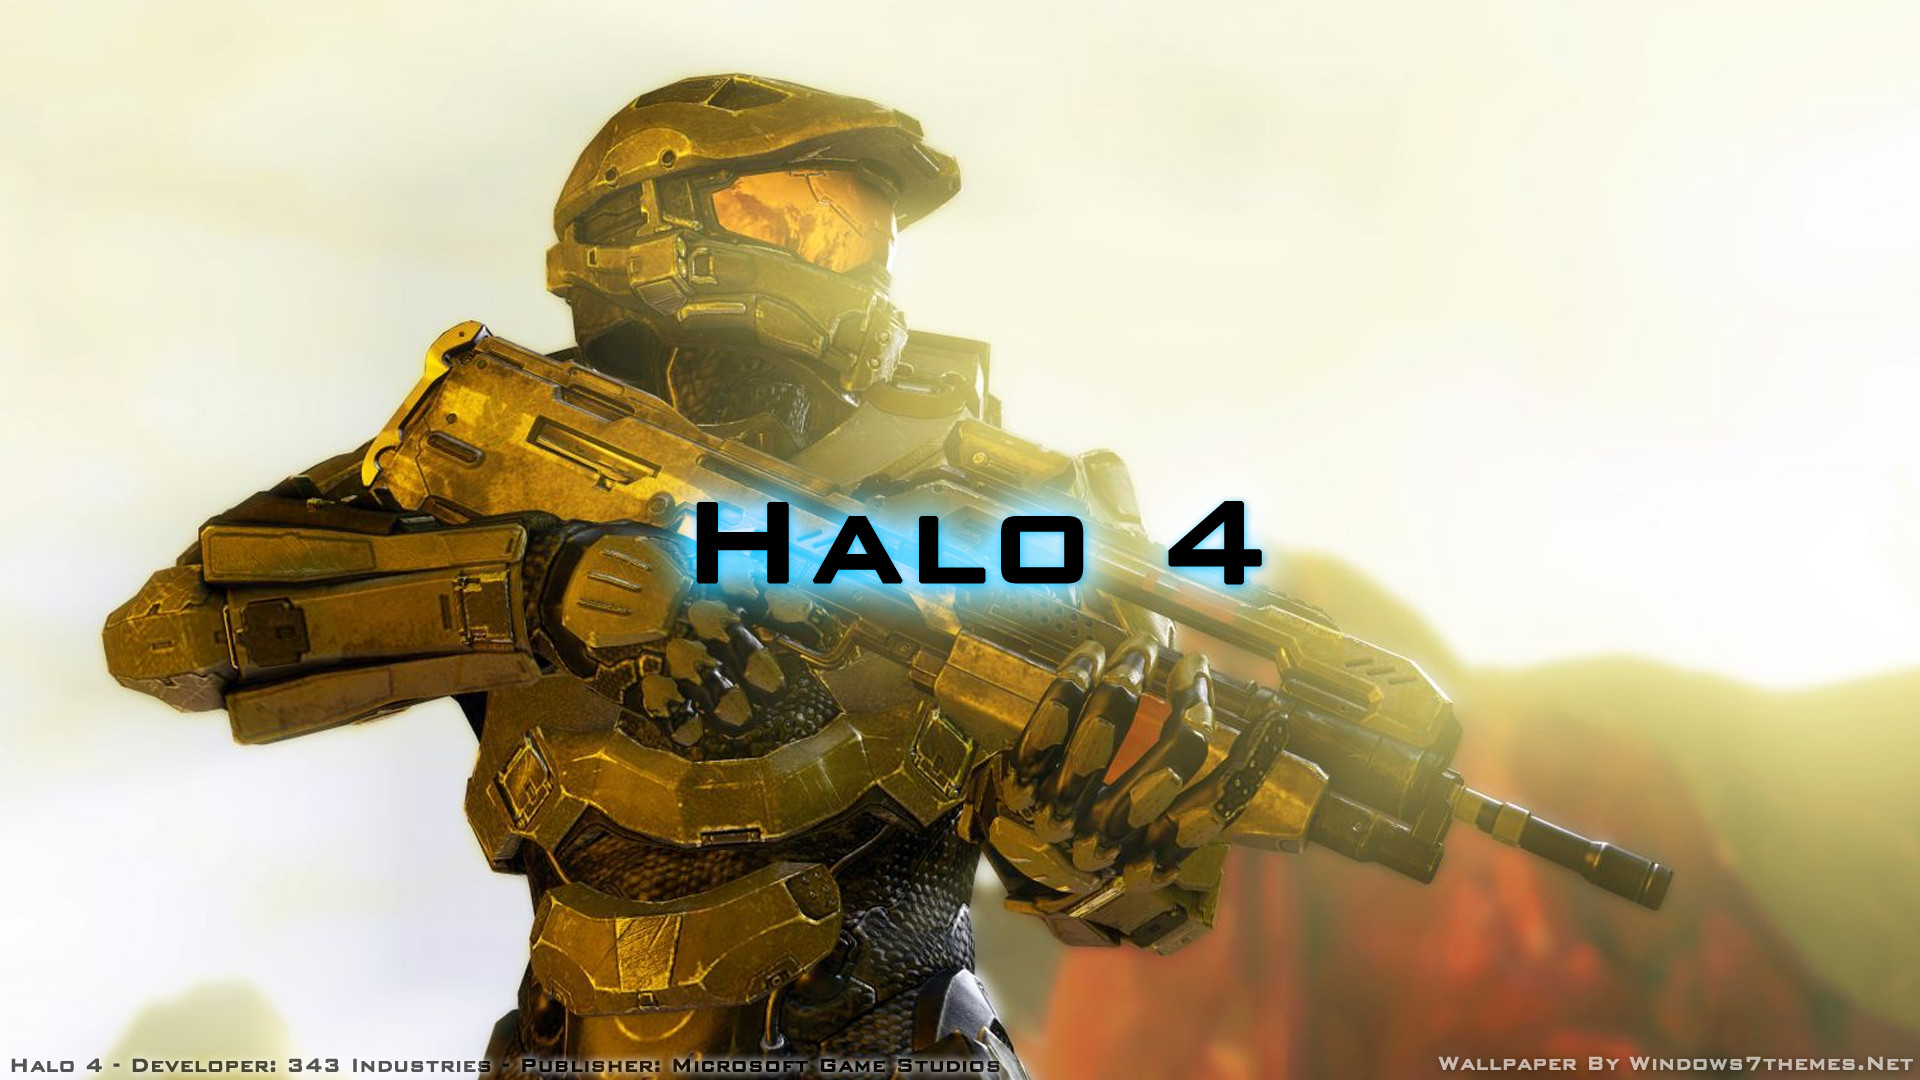 1920x1080 Download Halo 4 Wallpaper 1